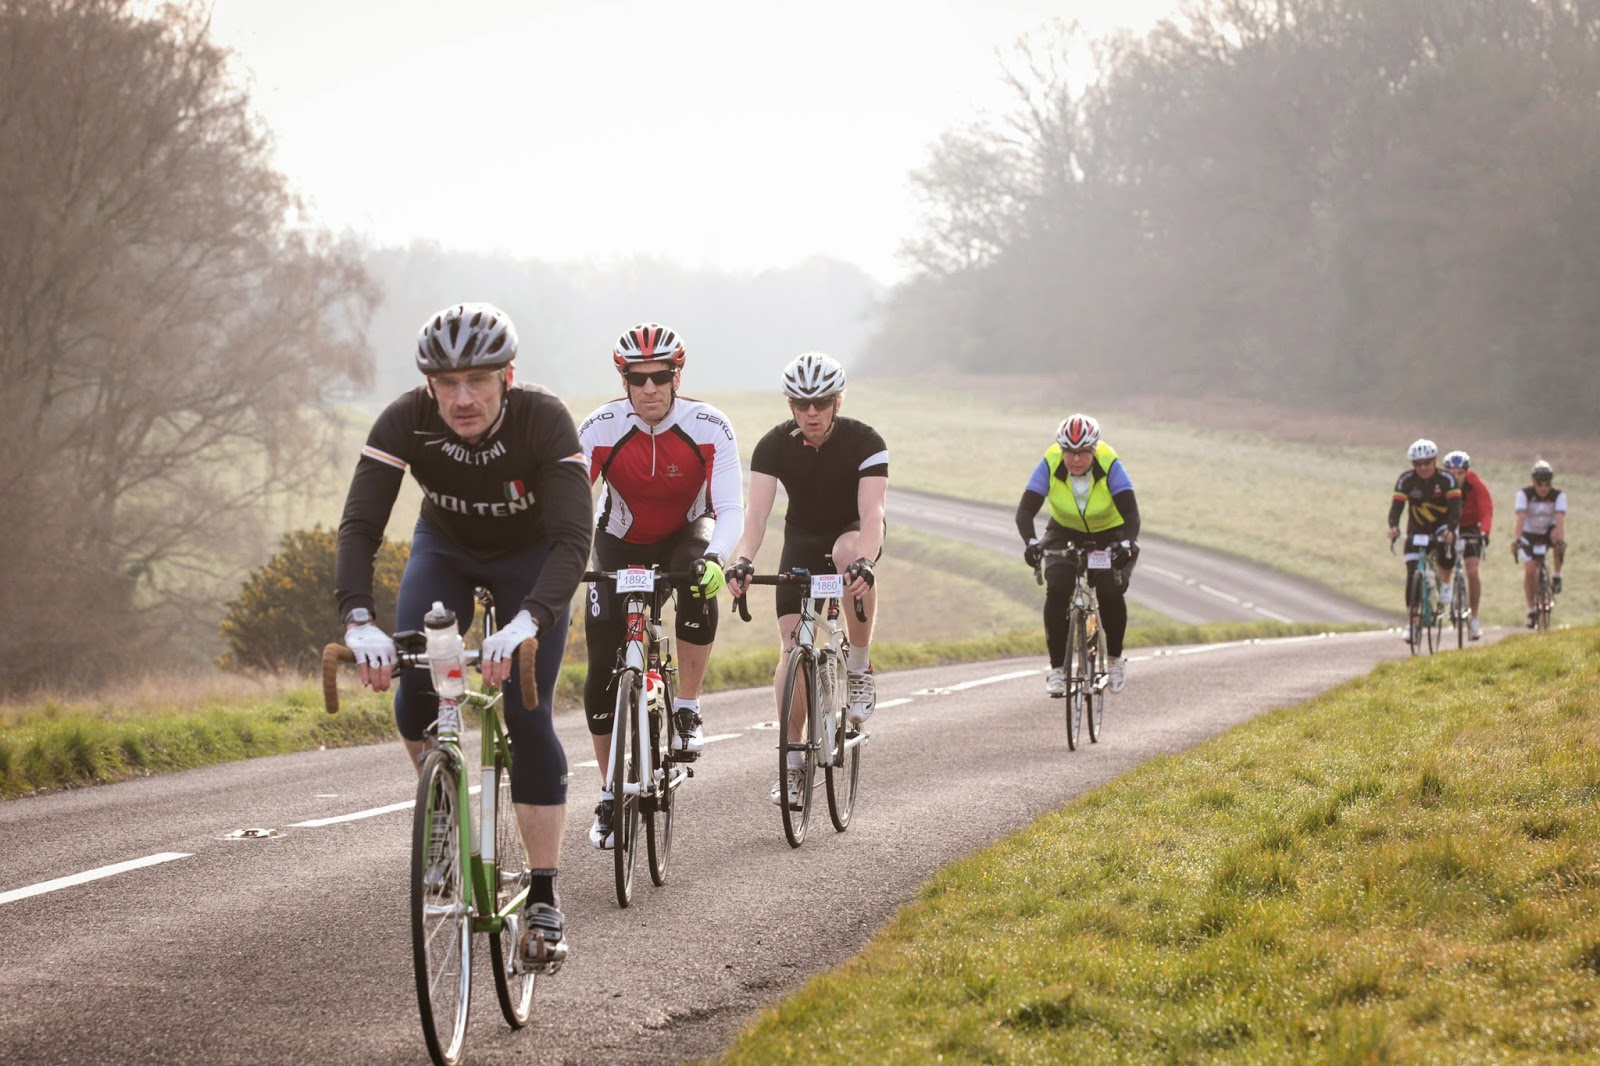 Cyclists in Surrey, UK